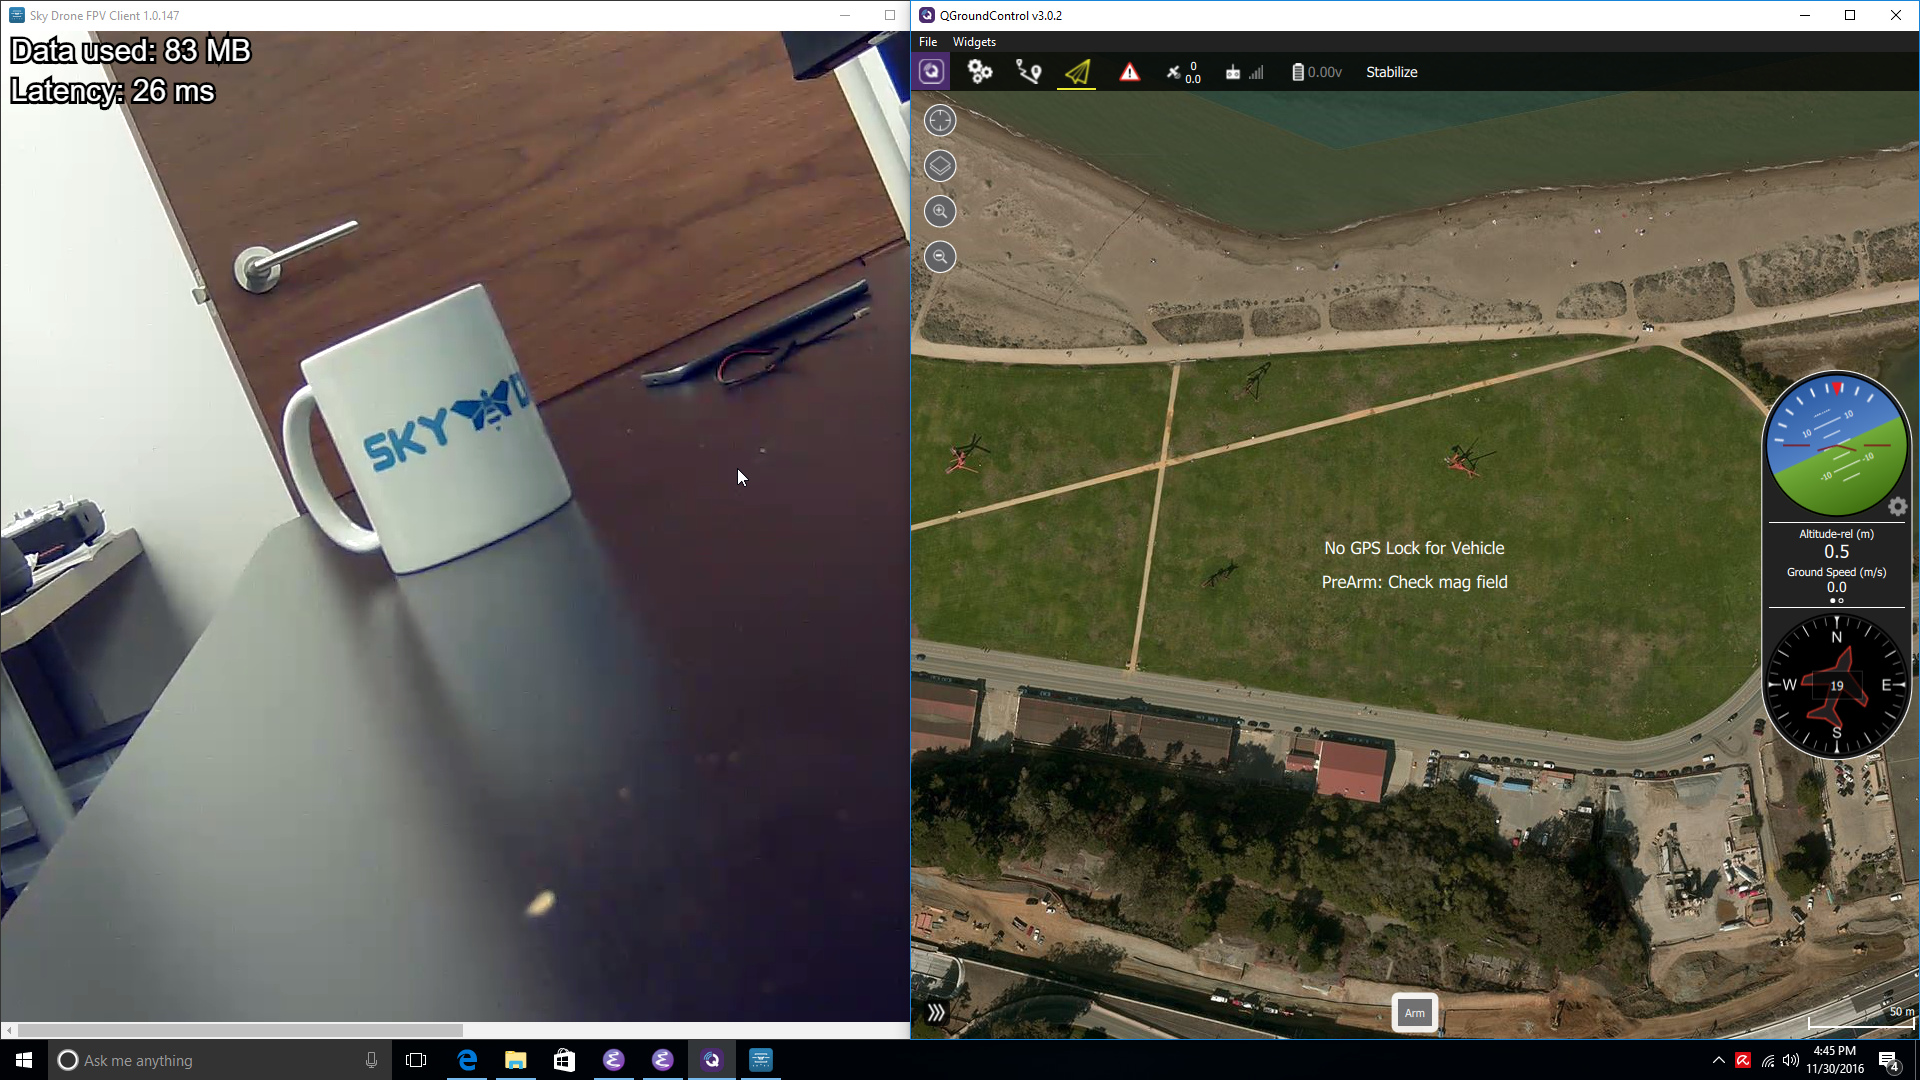 Using Sky Drone FPV with QGroundControl for full 4G/LTE drone control